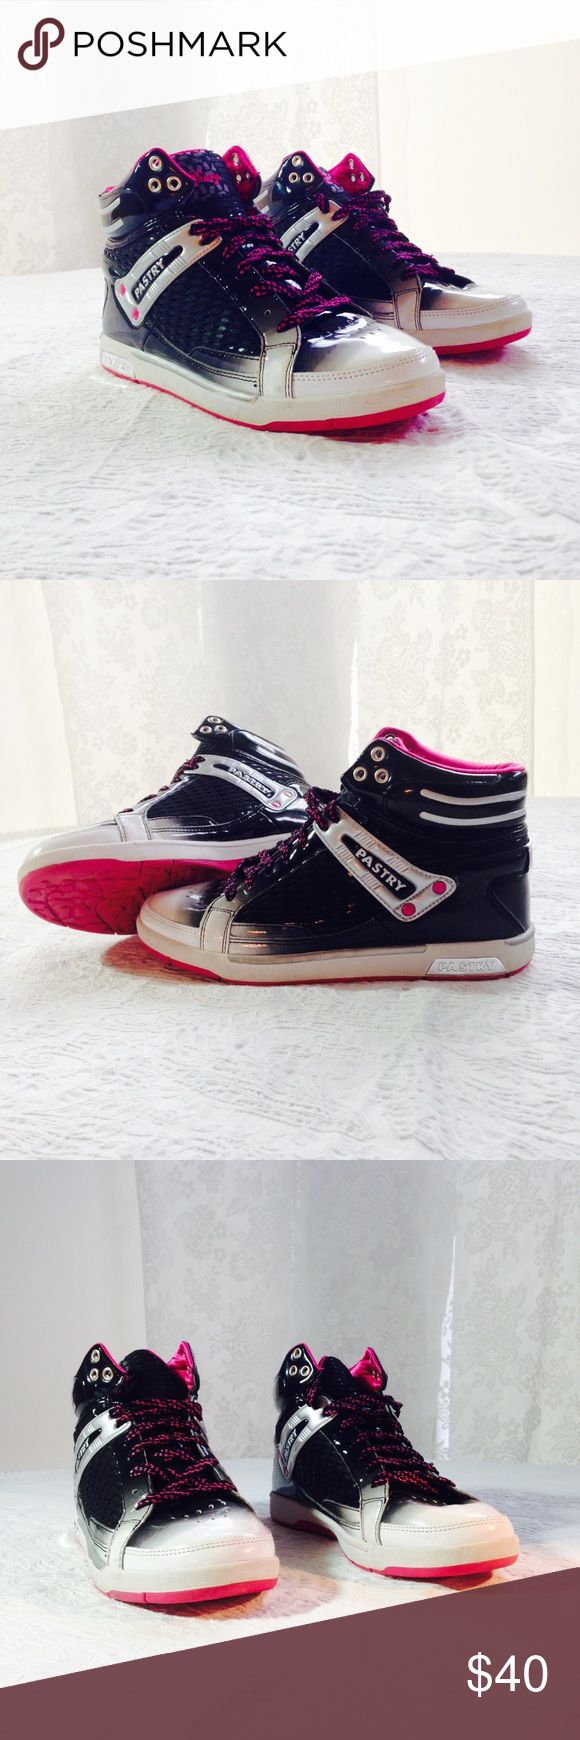 Pastry Shoes Stylish high-top, Pink & Black Laces, Pink Rubber Soles, Pink Inside, Primarily Black & White Outside Pastry Shoes Sneakers